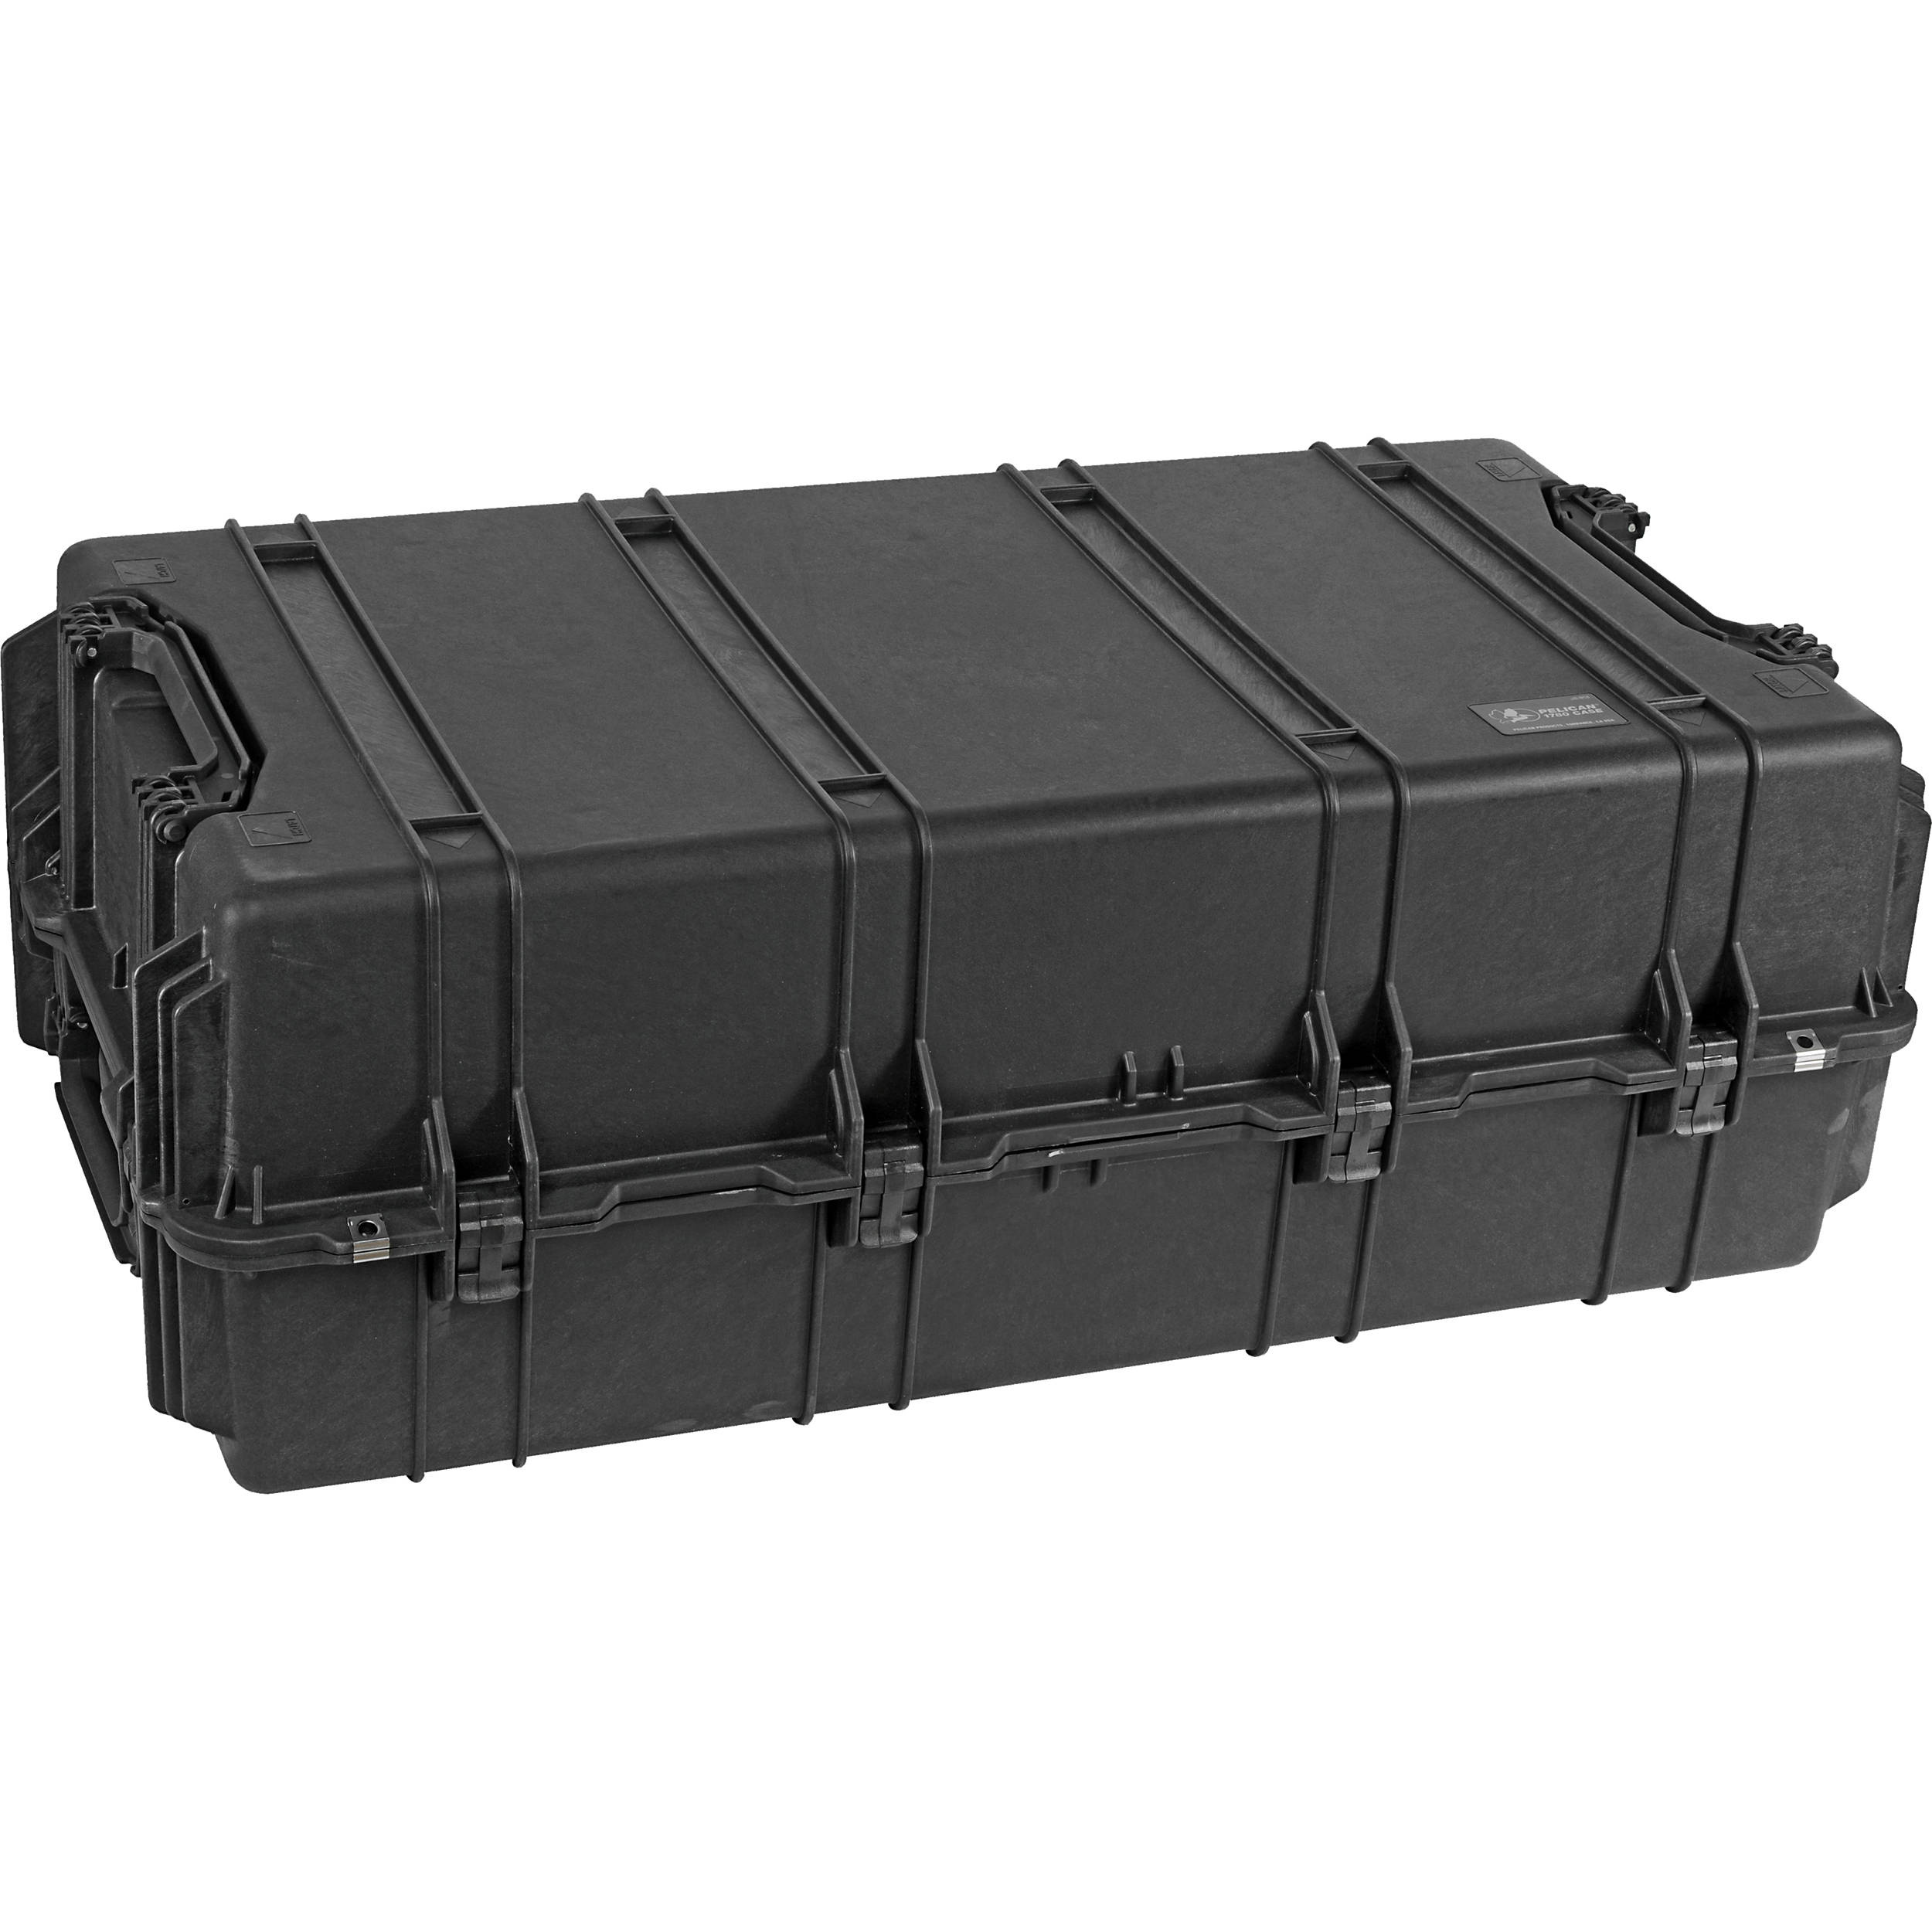 Pelican 1780W HL Long Case with Rigid Polyethylene Tray (Black)